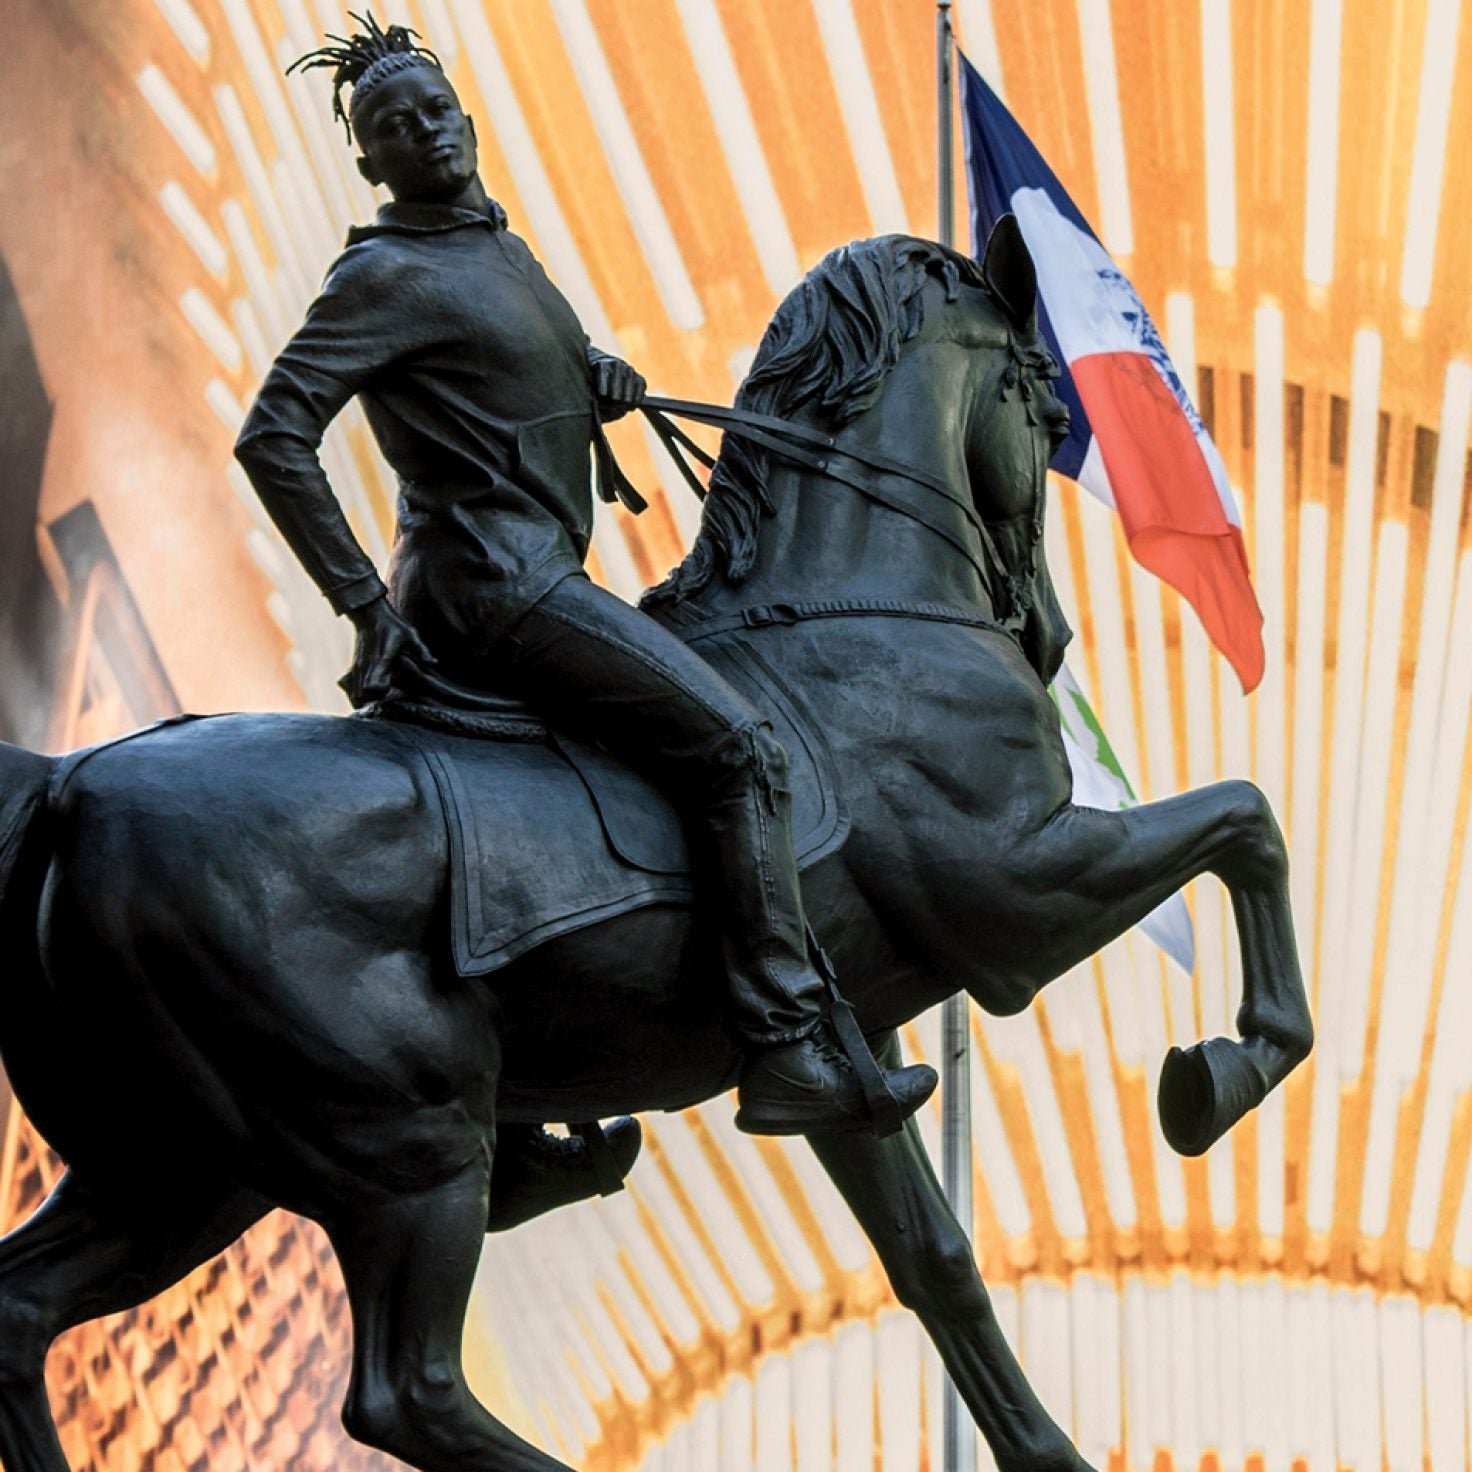 Regal Black Statue Unveiled In Former Capital Of The Confederacy + 9 Other Headlines We're Talking About